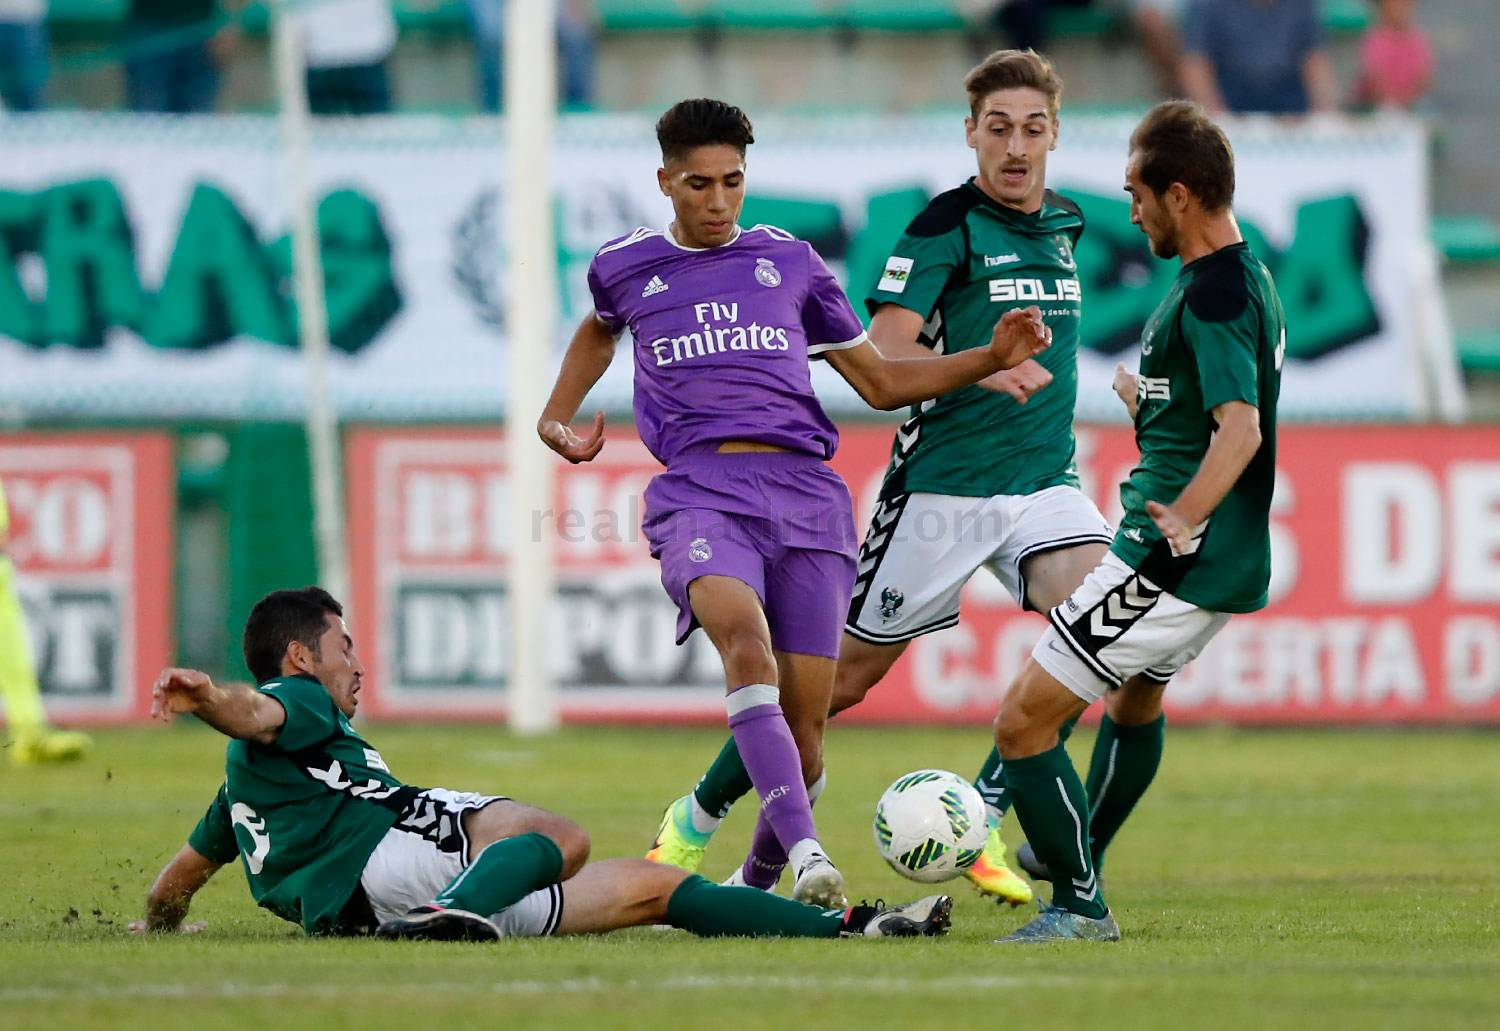 Real Madrid - Toledo - Real Madrid Castilla - 08-10-2016